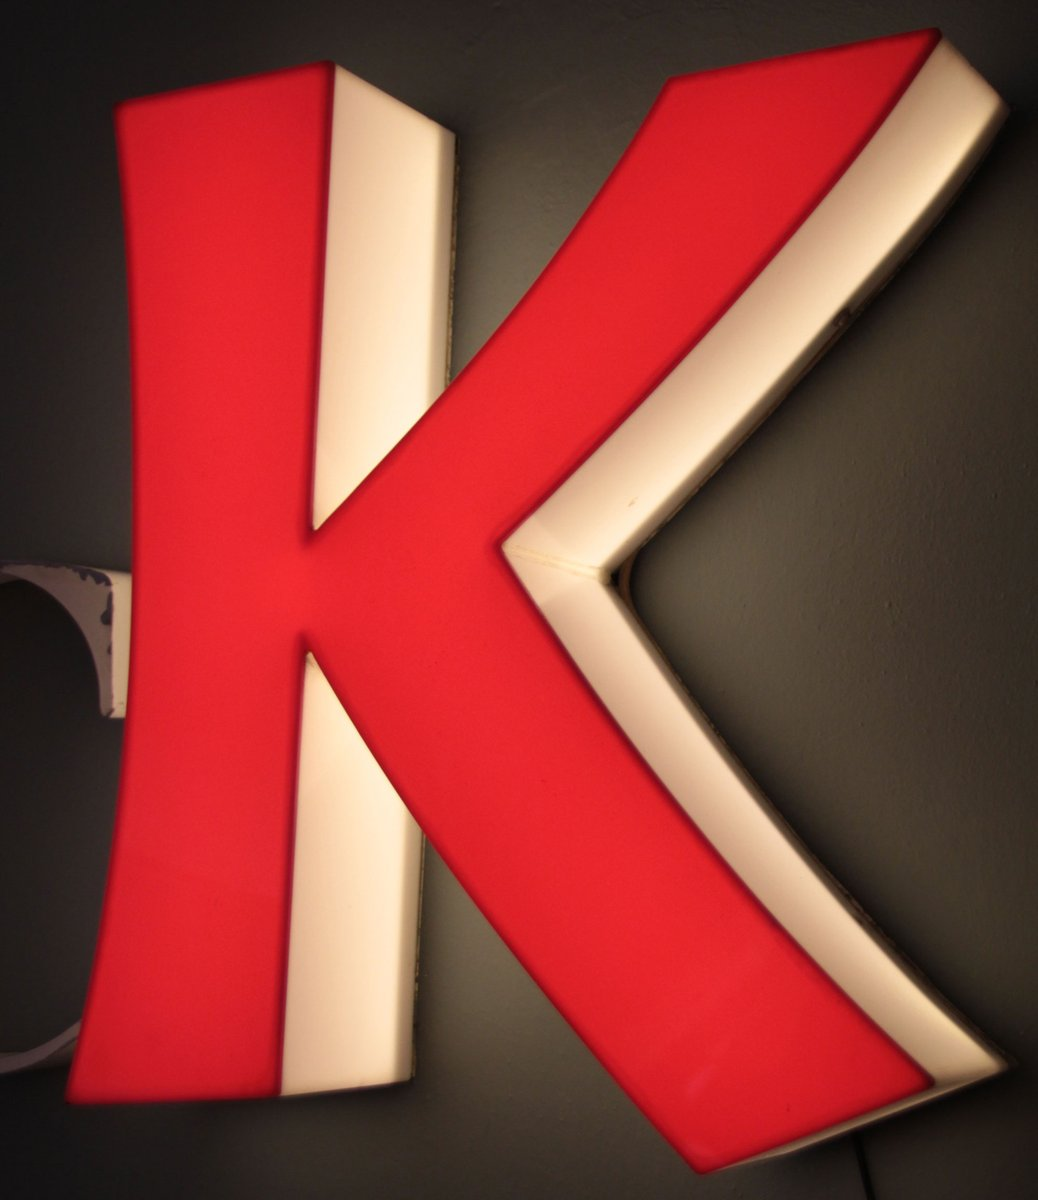 Large Metal Letter K Large Midcentury Metal Letters Glüc And Illuminated Letter K For